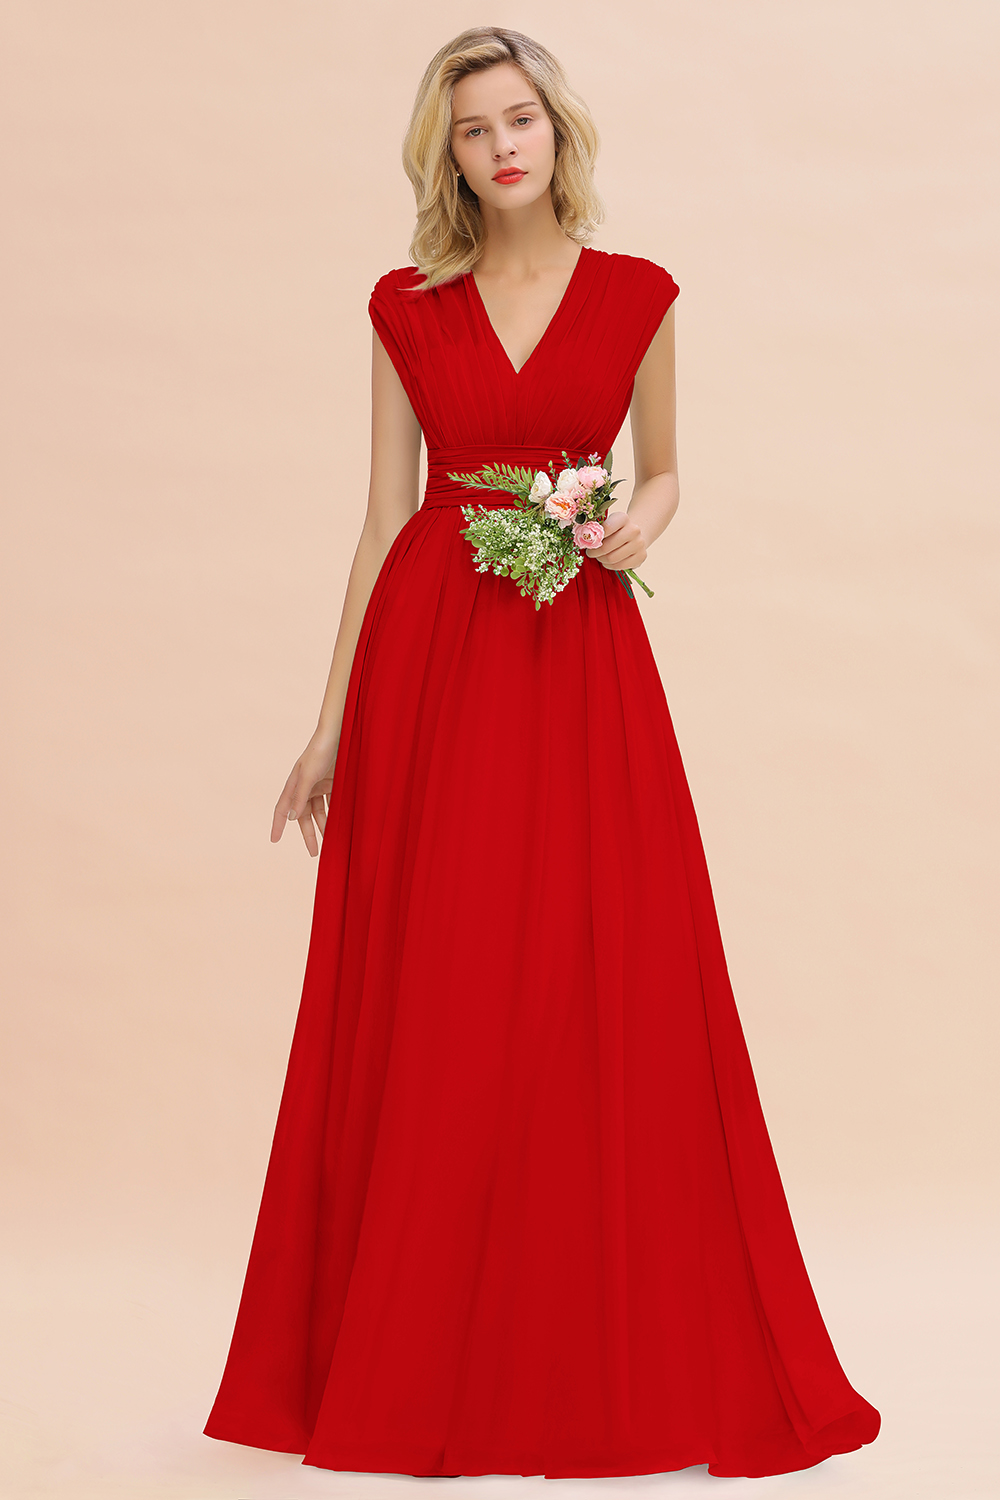 BMbridal Elegant Chiffon V-Neck Ruffle Long Bridesmaid Dresses Affordable